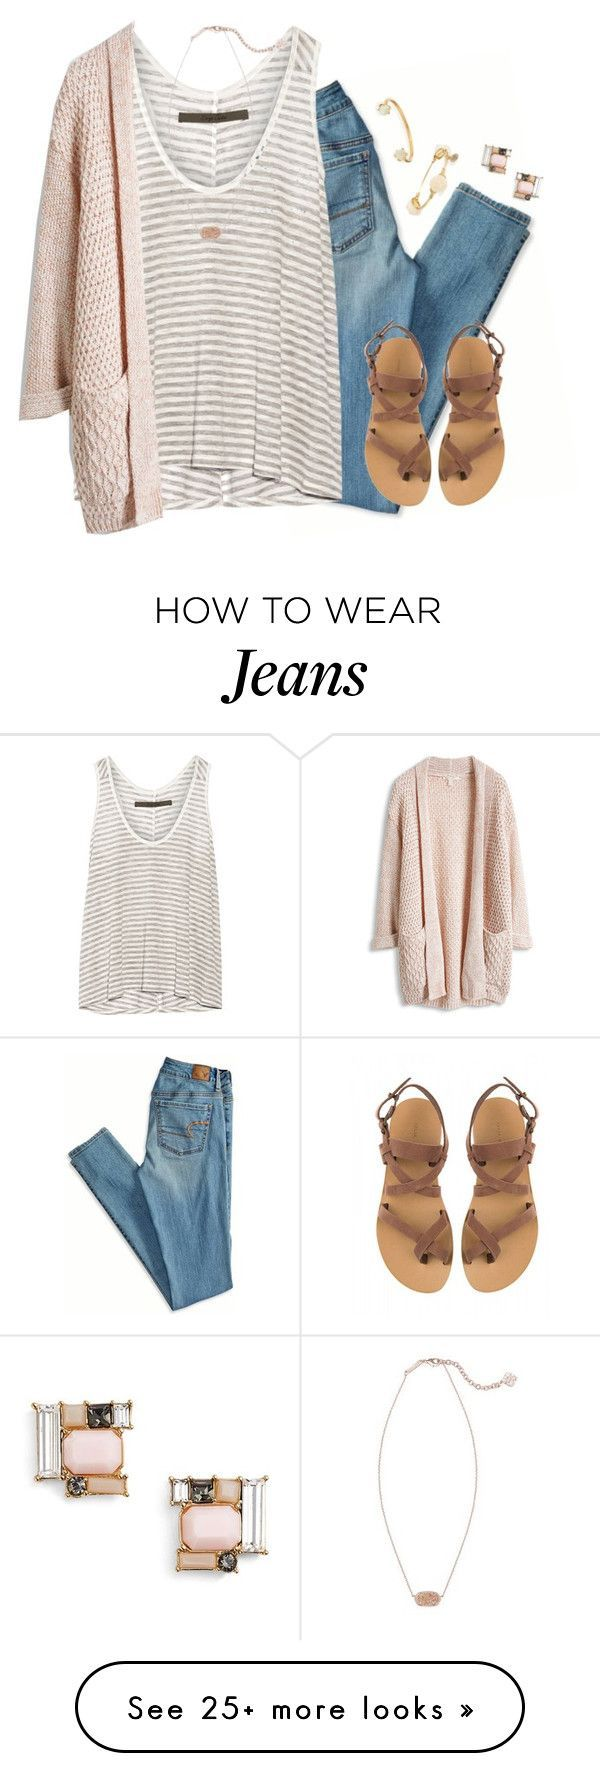 """❁ she needed a hero so that's what she became ❁"" by kaley-ii on Polyvore featuring American Eagle Outfitters, Enza Costa, Kendra Scott, Valia Gabriel, Bourbon and Boweties, Lizzie Fortunato and Kate Spade"